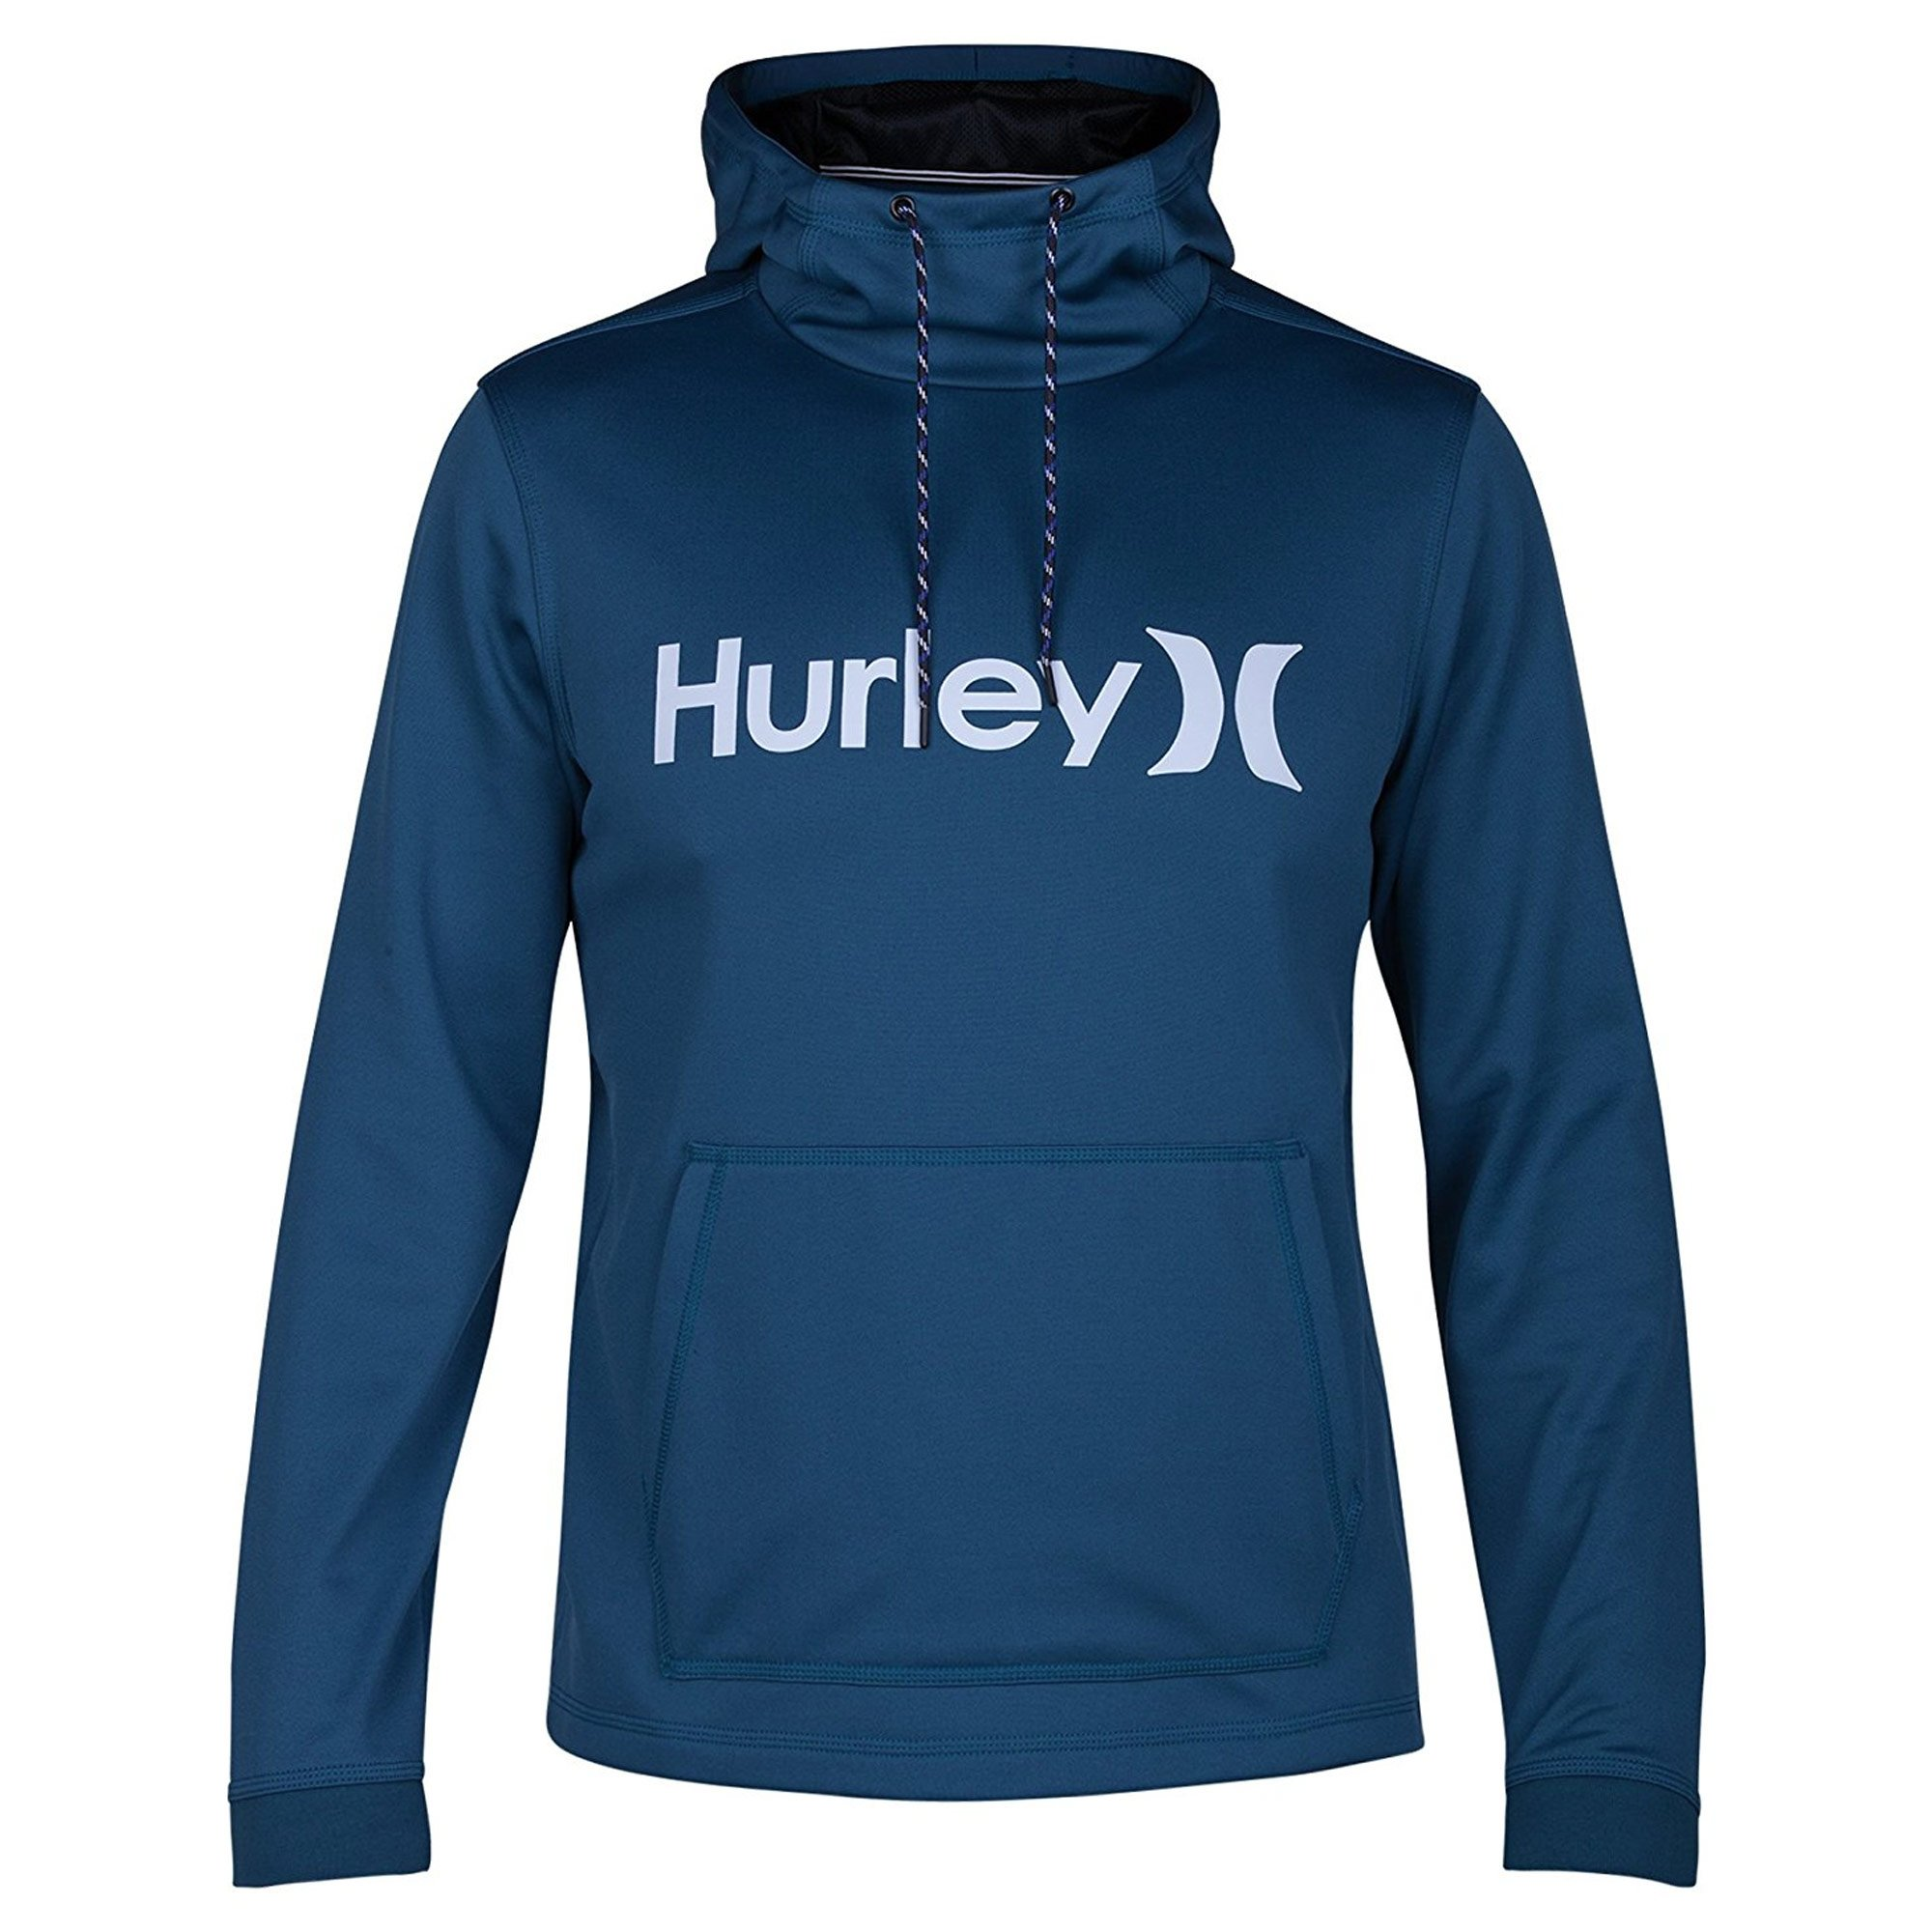 Hurley Men's Therma Protect Pullover Fleece, Space Blue, Small